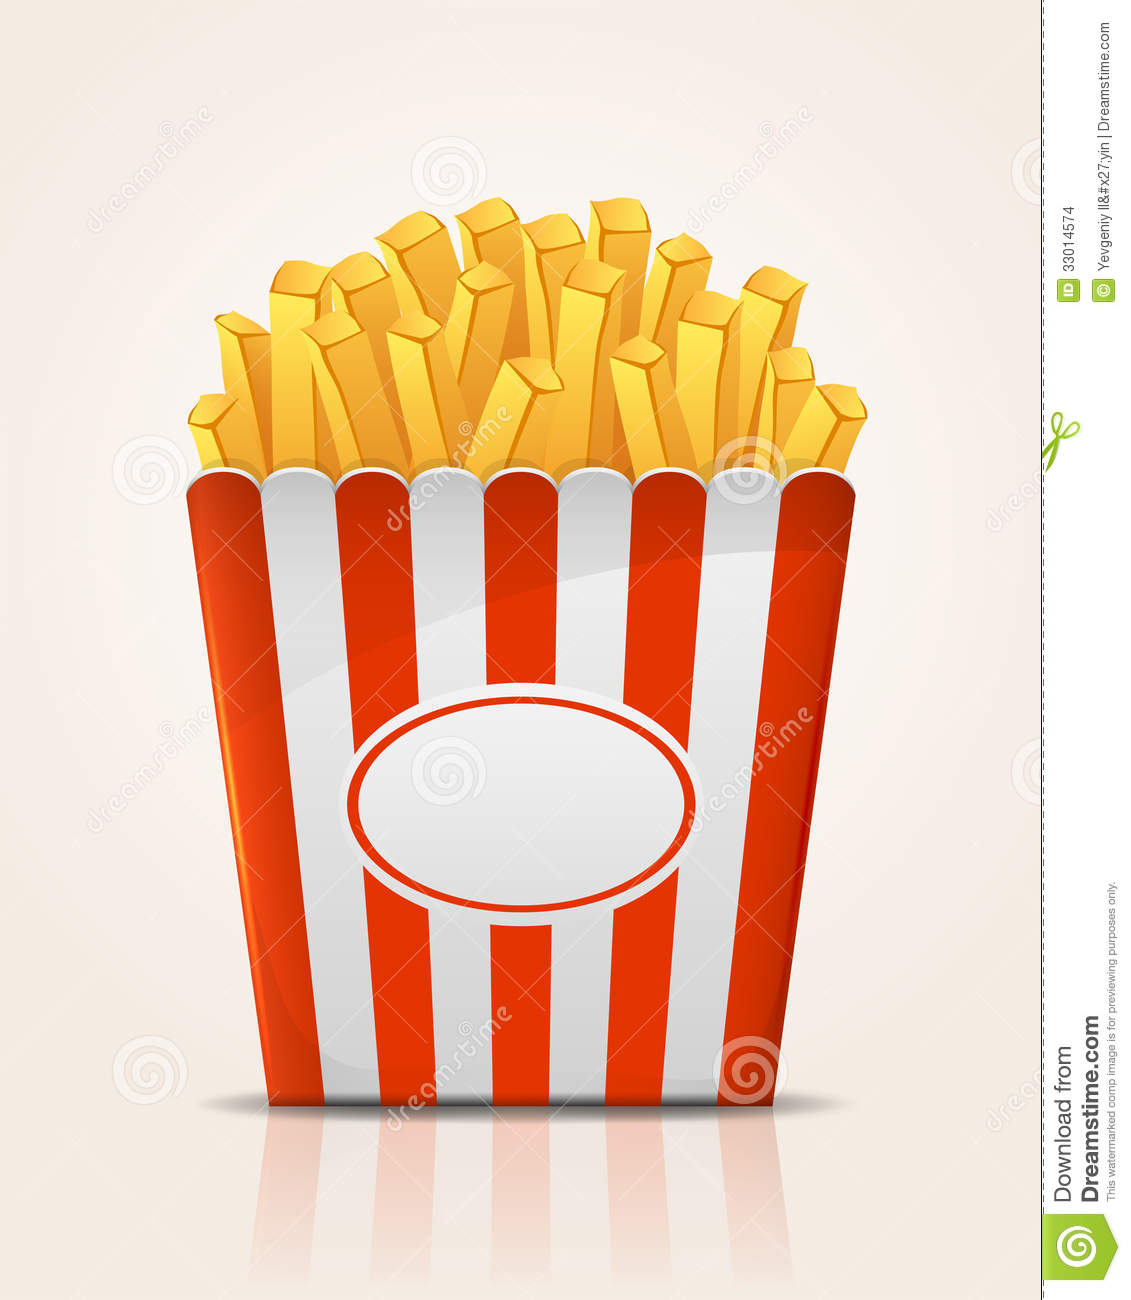 French Fries Potato Stock Images - Image: 33014574